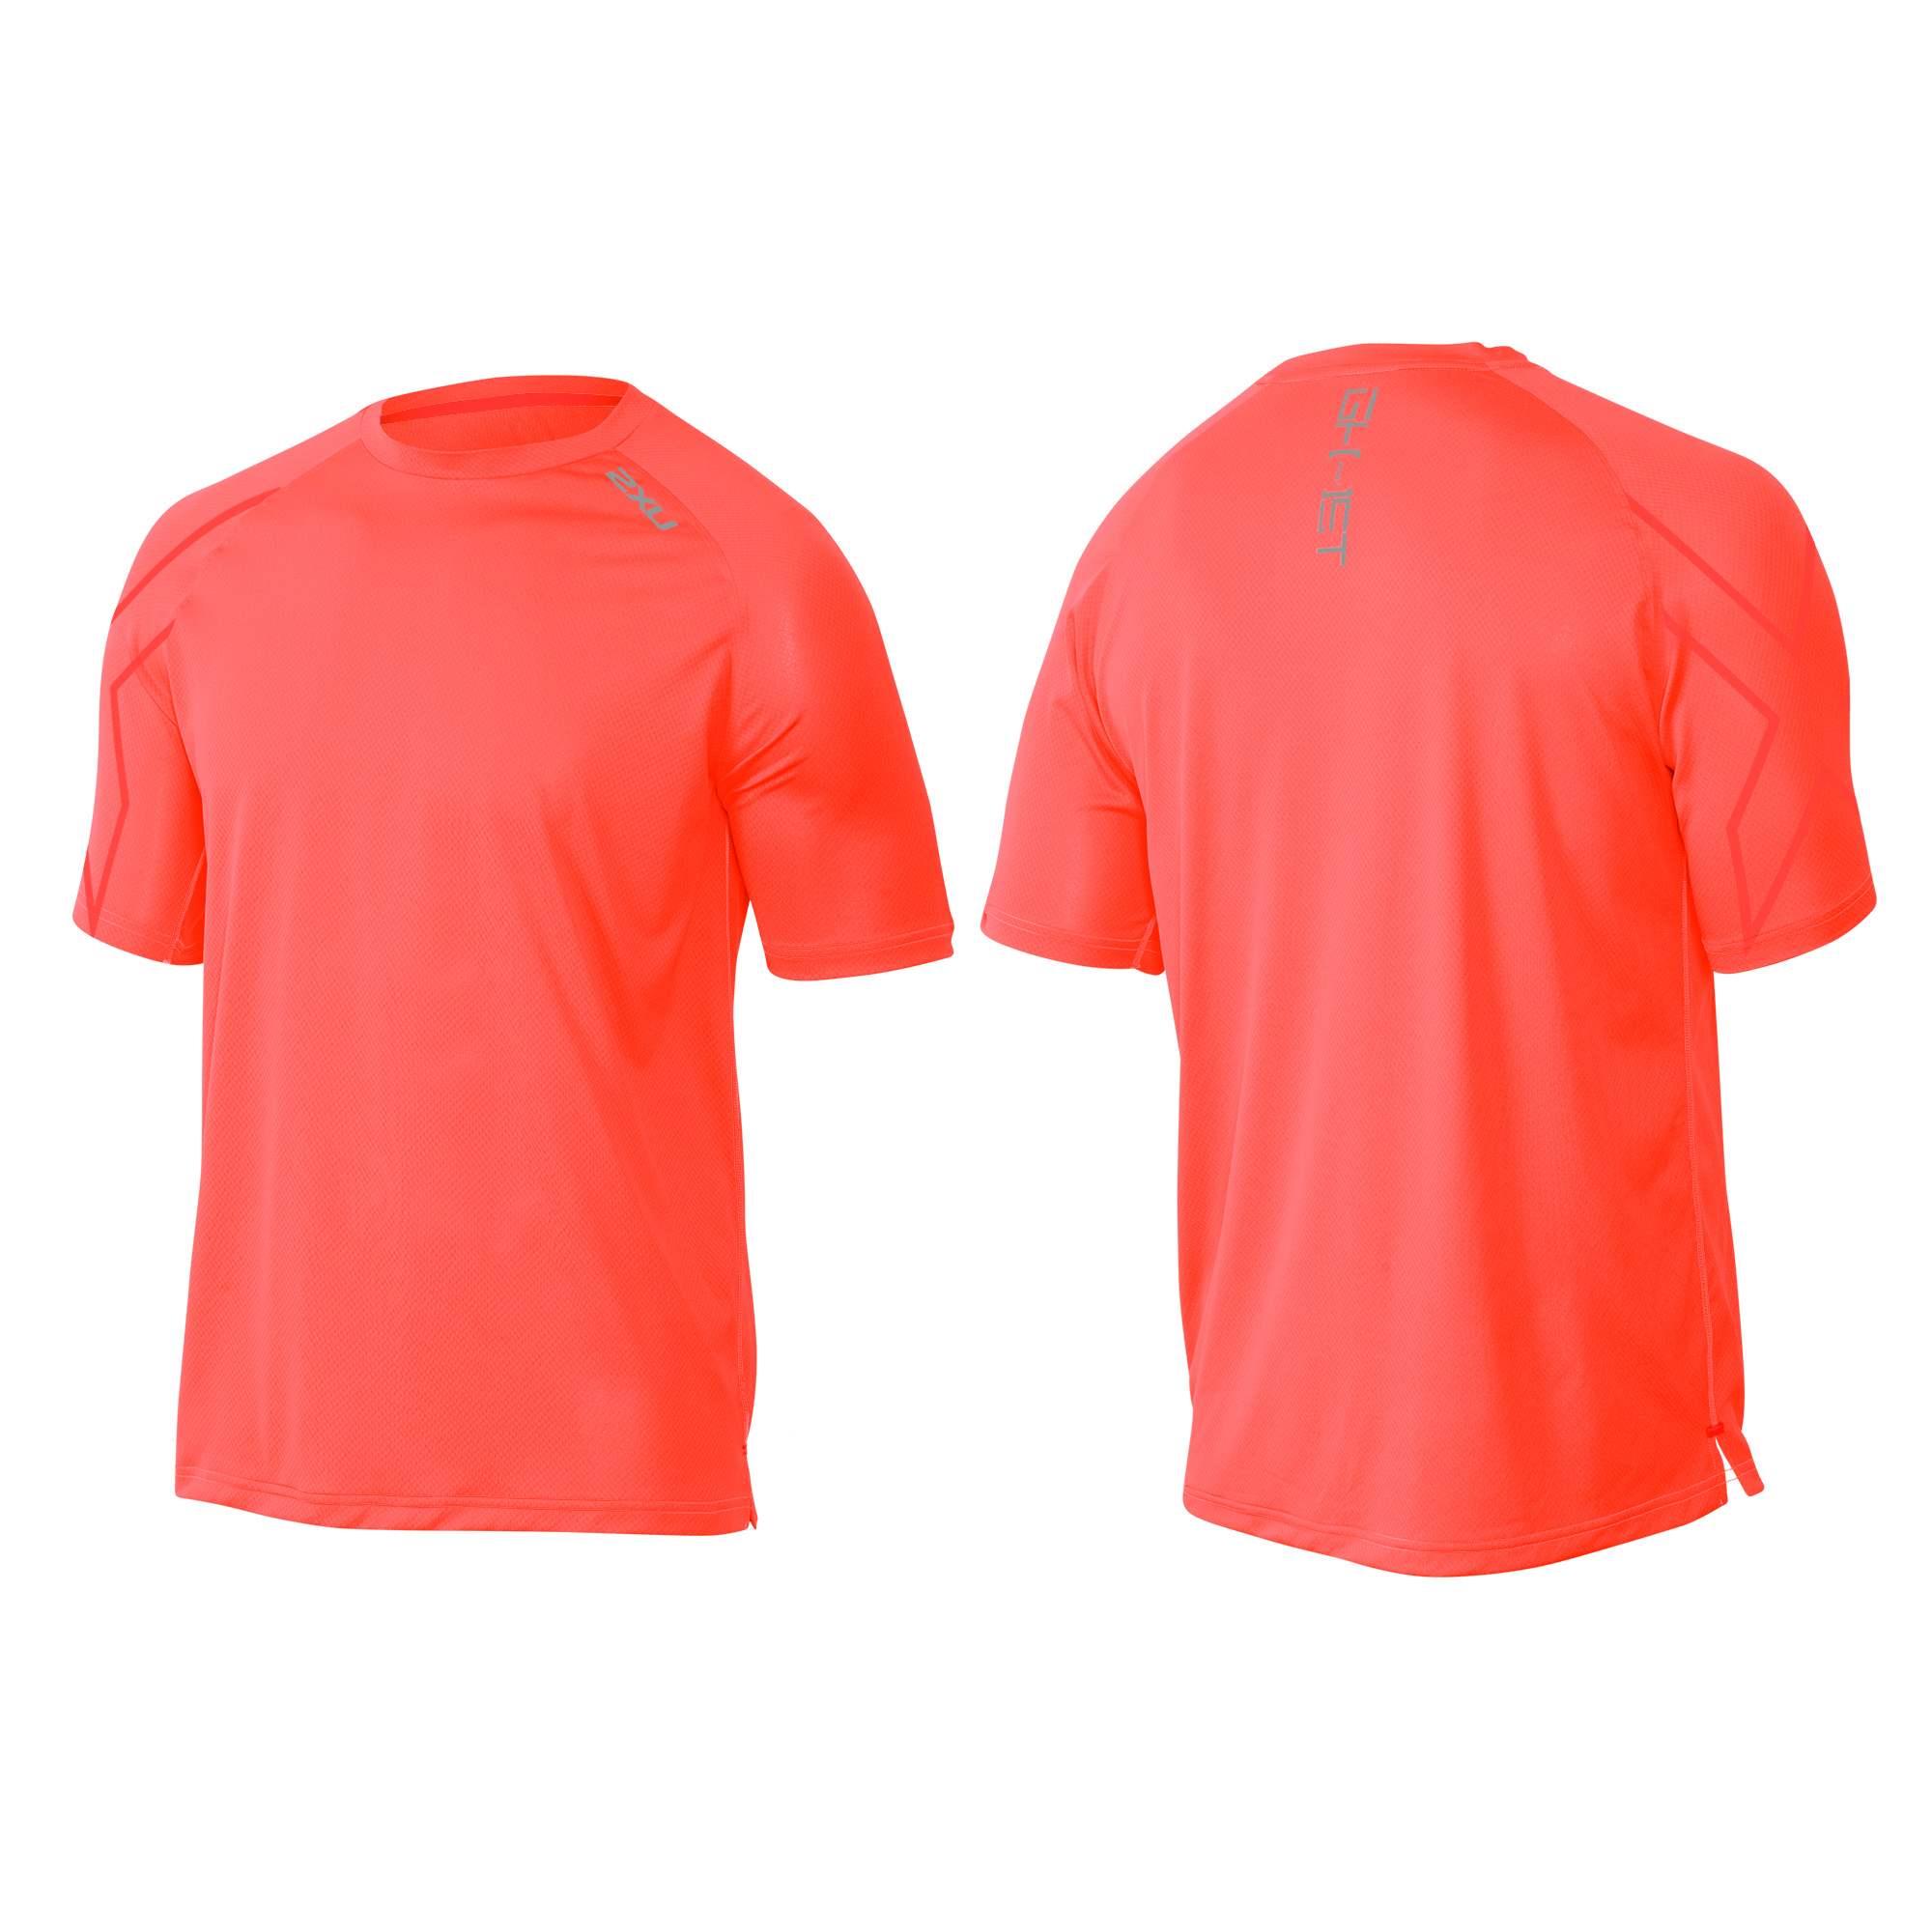 MAGLIA RUNNING 2XU MEN'S GHST S/S TOP MR3728A sunburst orange